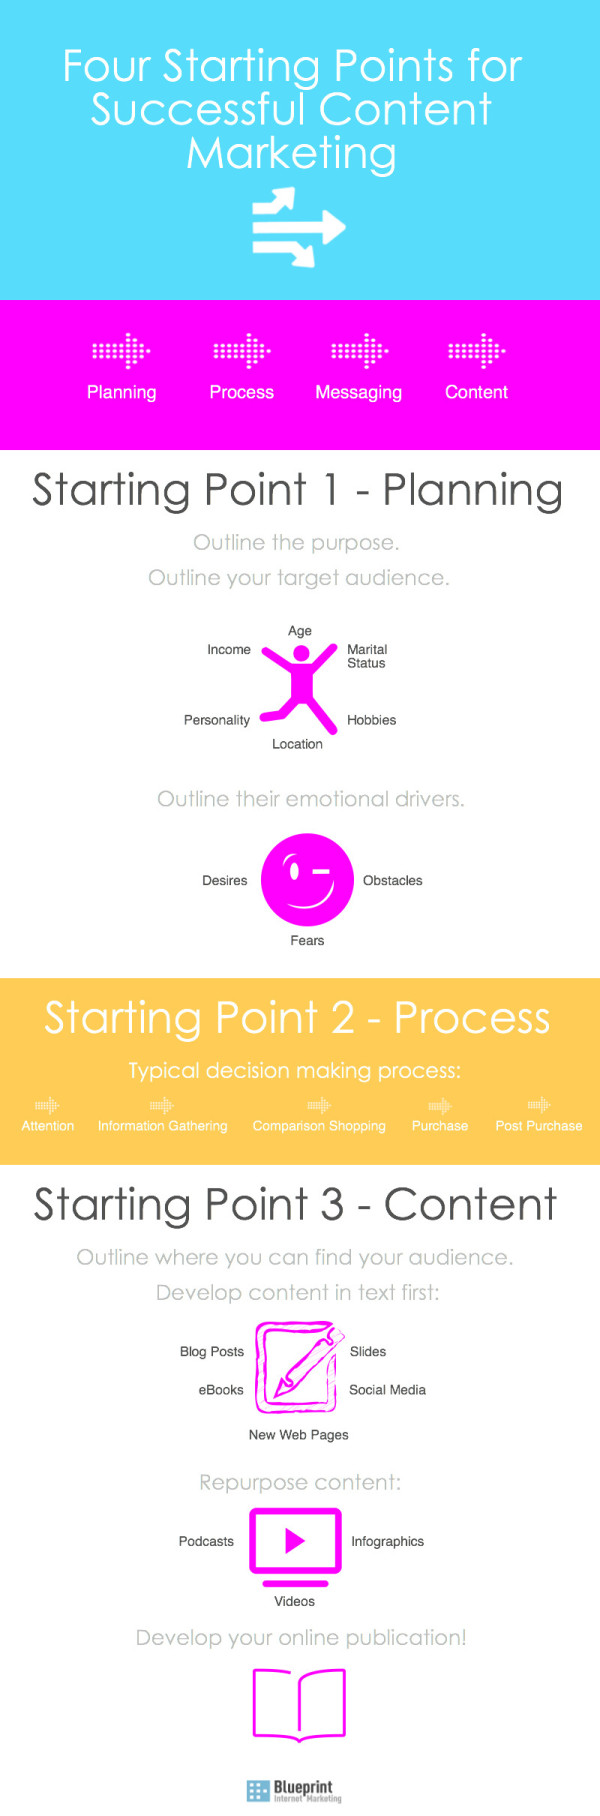 Four Starting Points for Successful Content Marketing